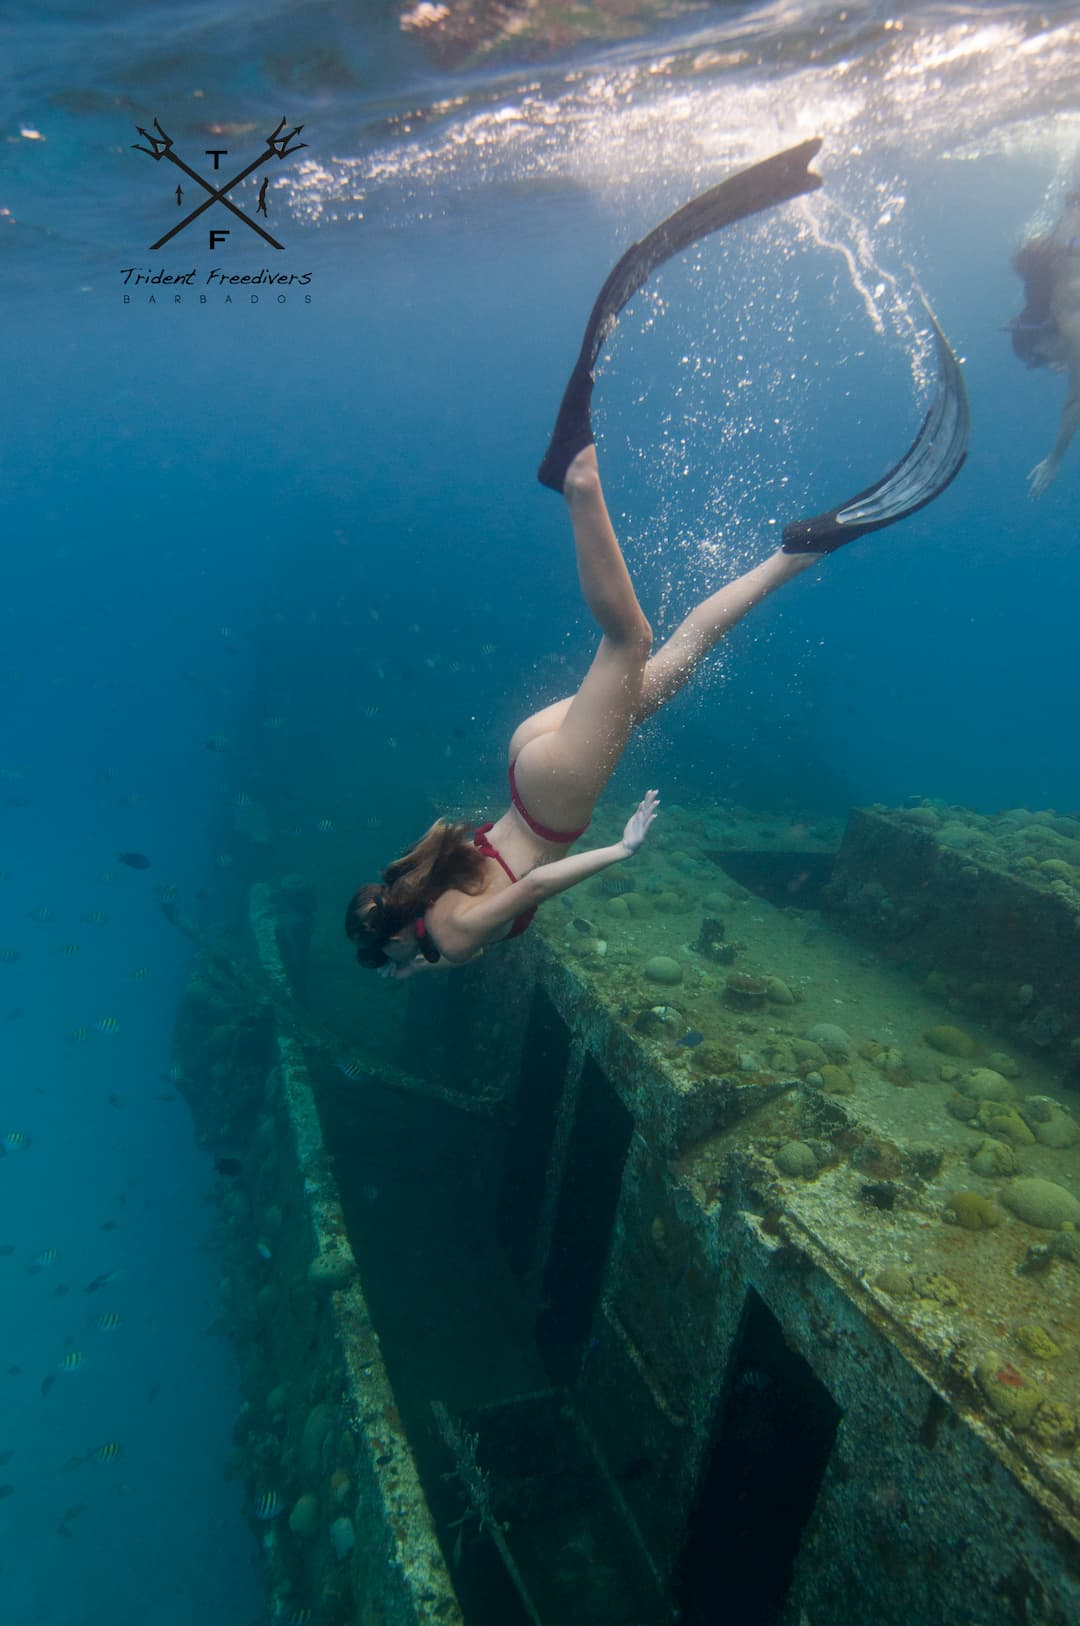 Underwater picture by Trident Freedivers. Available for purchase.